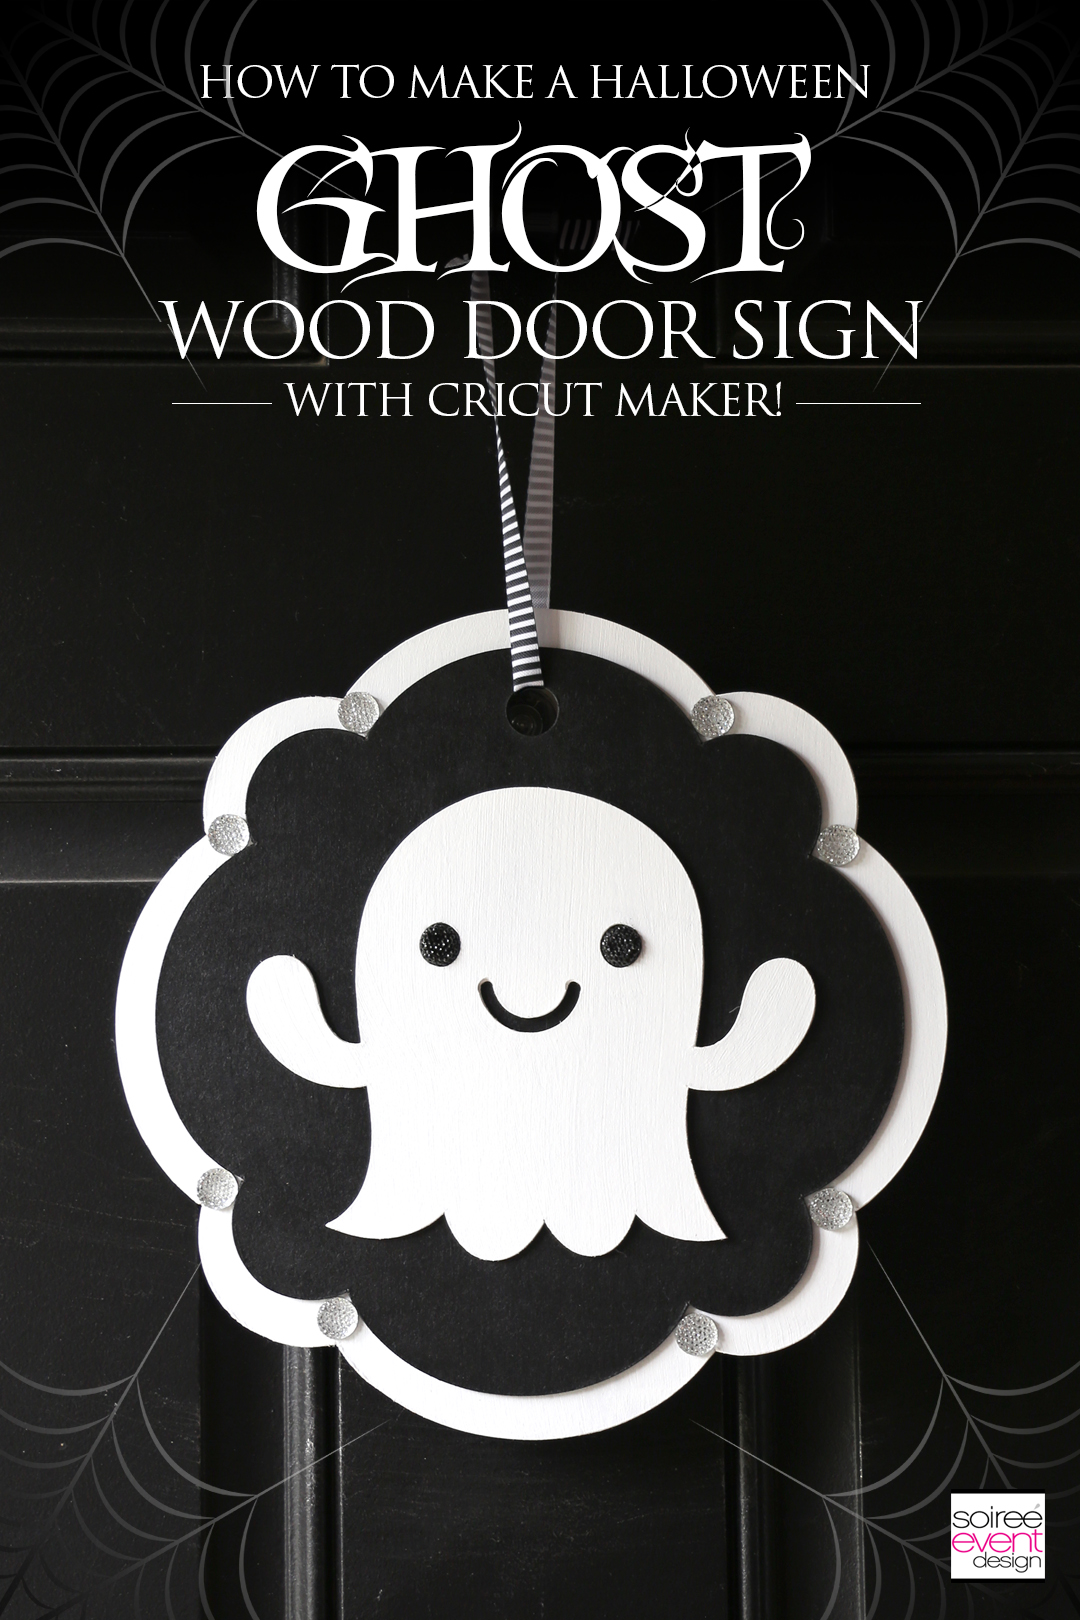 Cricut Halloween Ideas - DIY Ghost Halloween Door Sign - Soiree Event Design